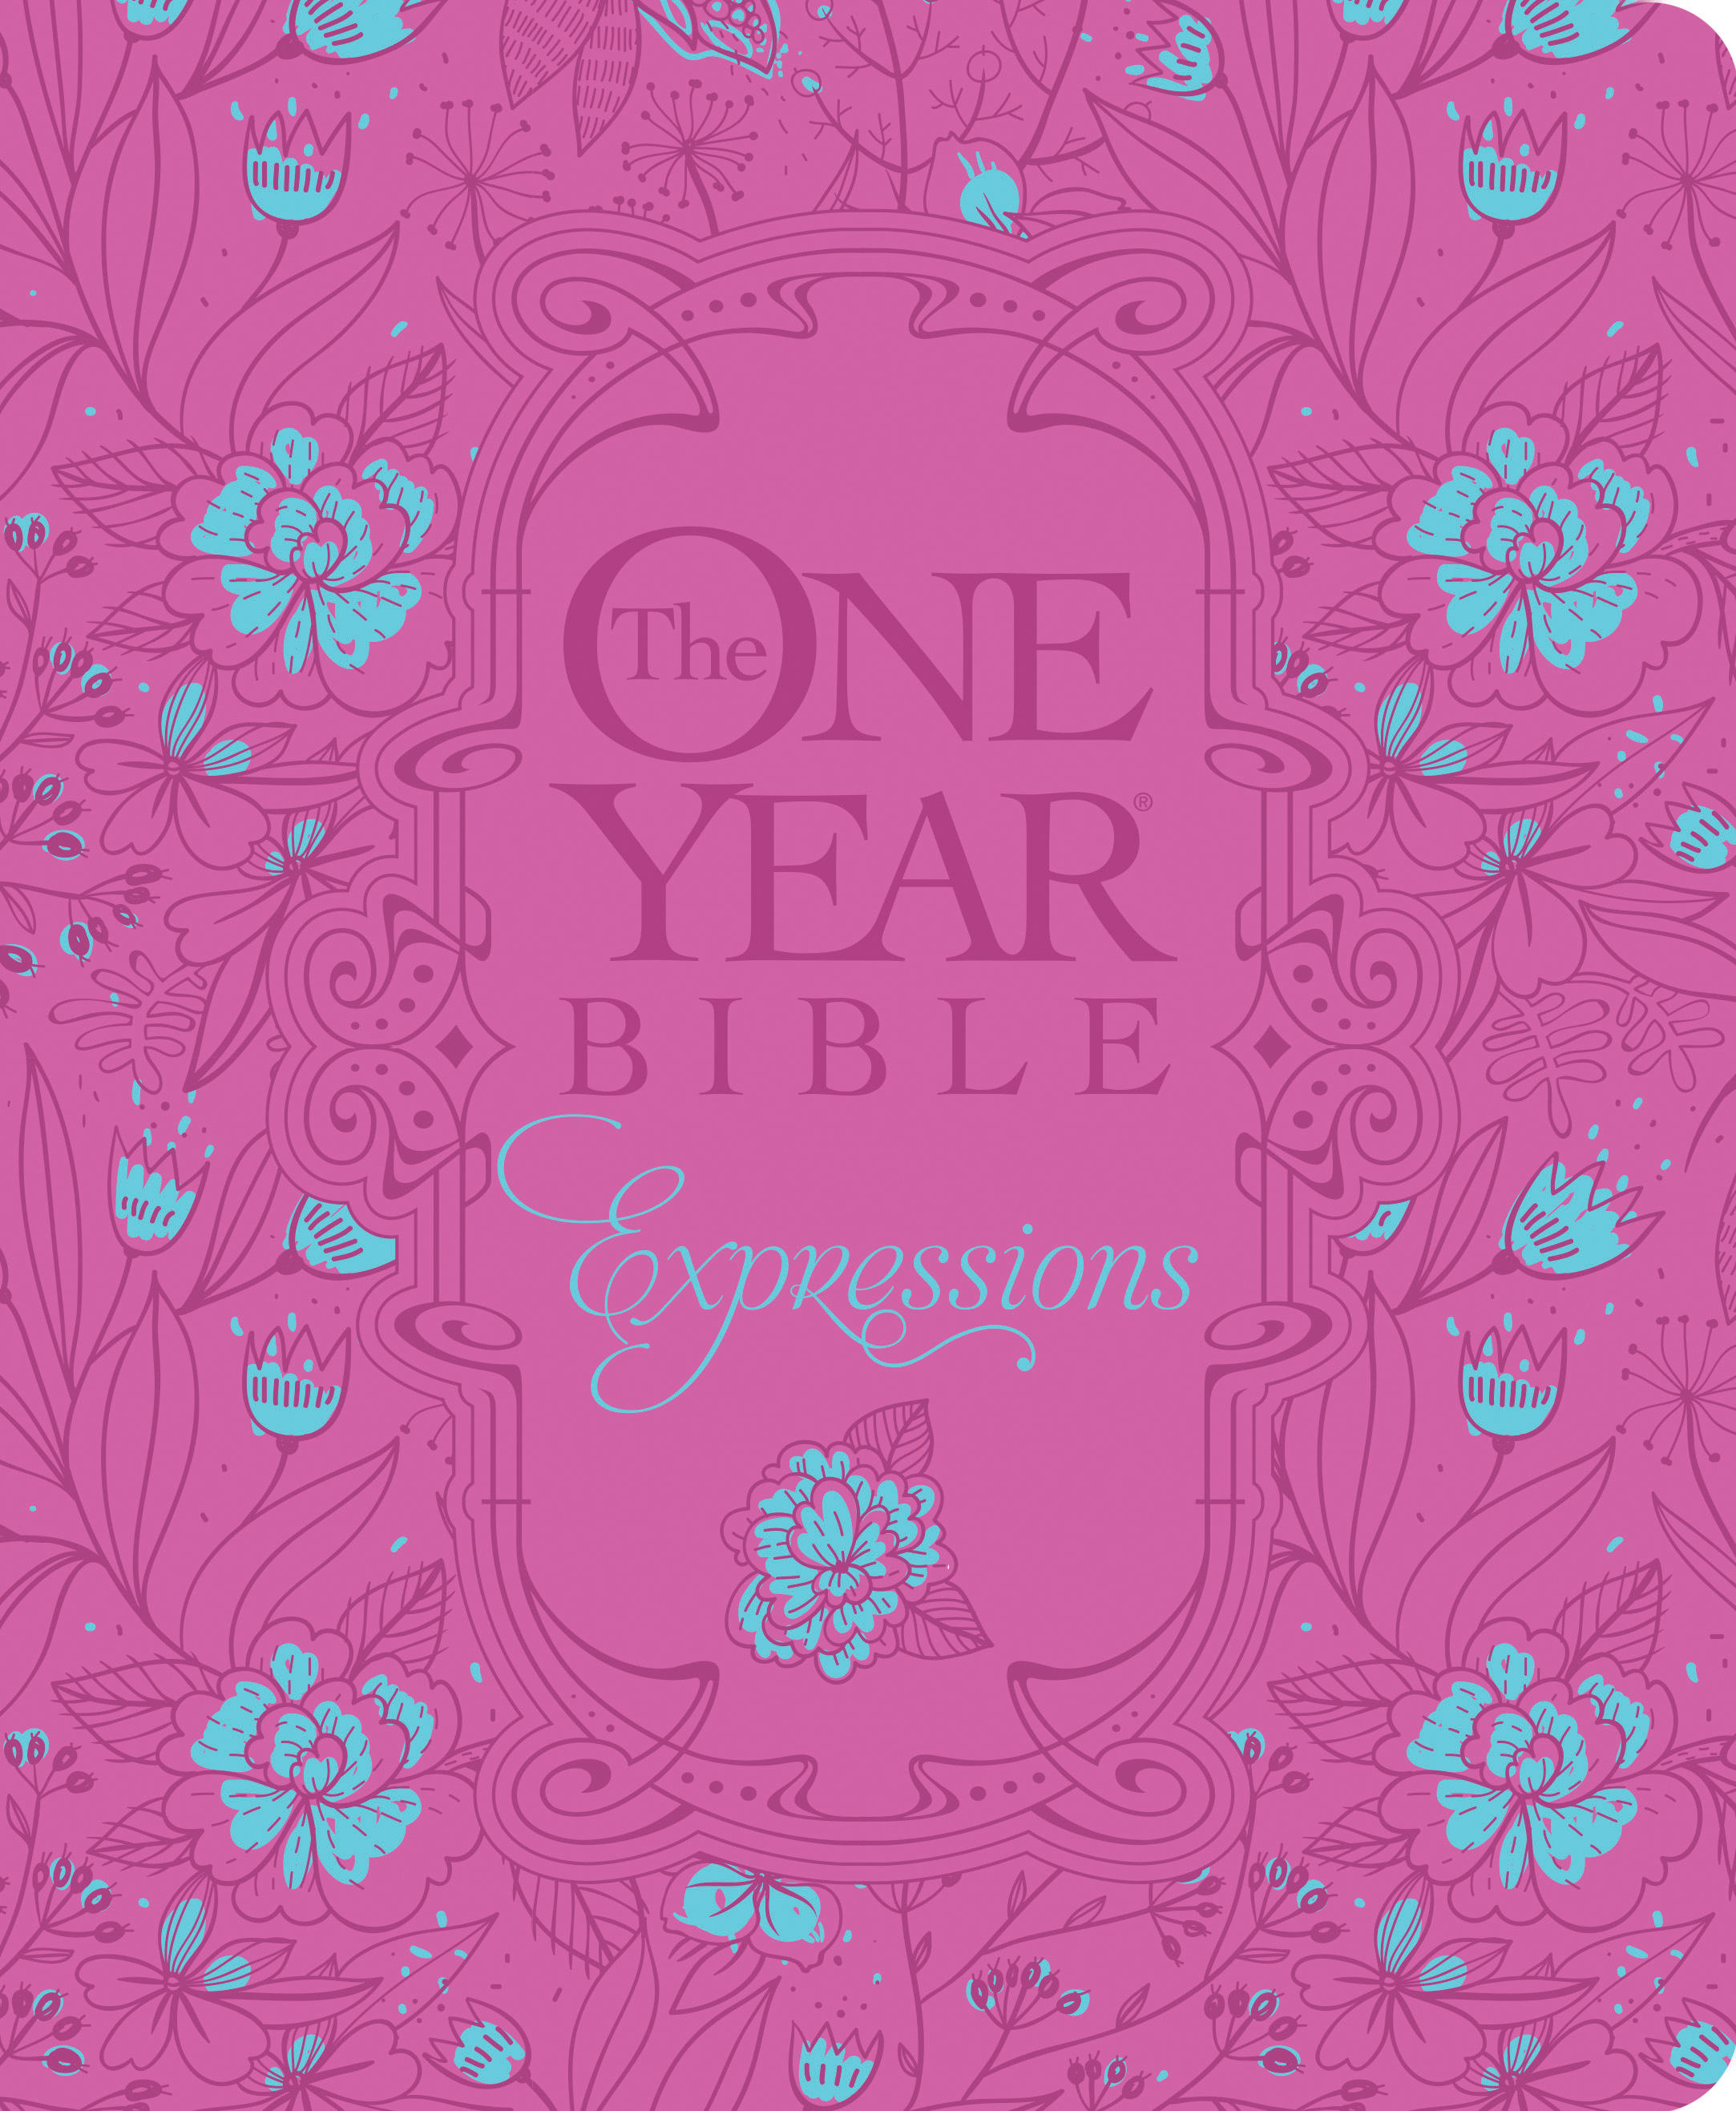 Tyndale | The One Year Bible Expressions